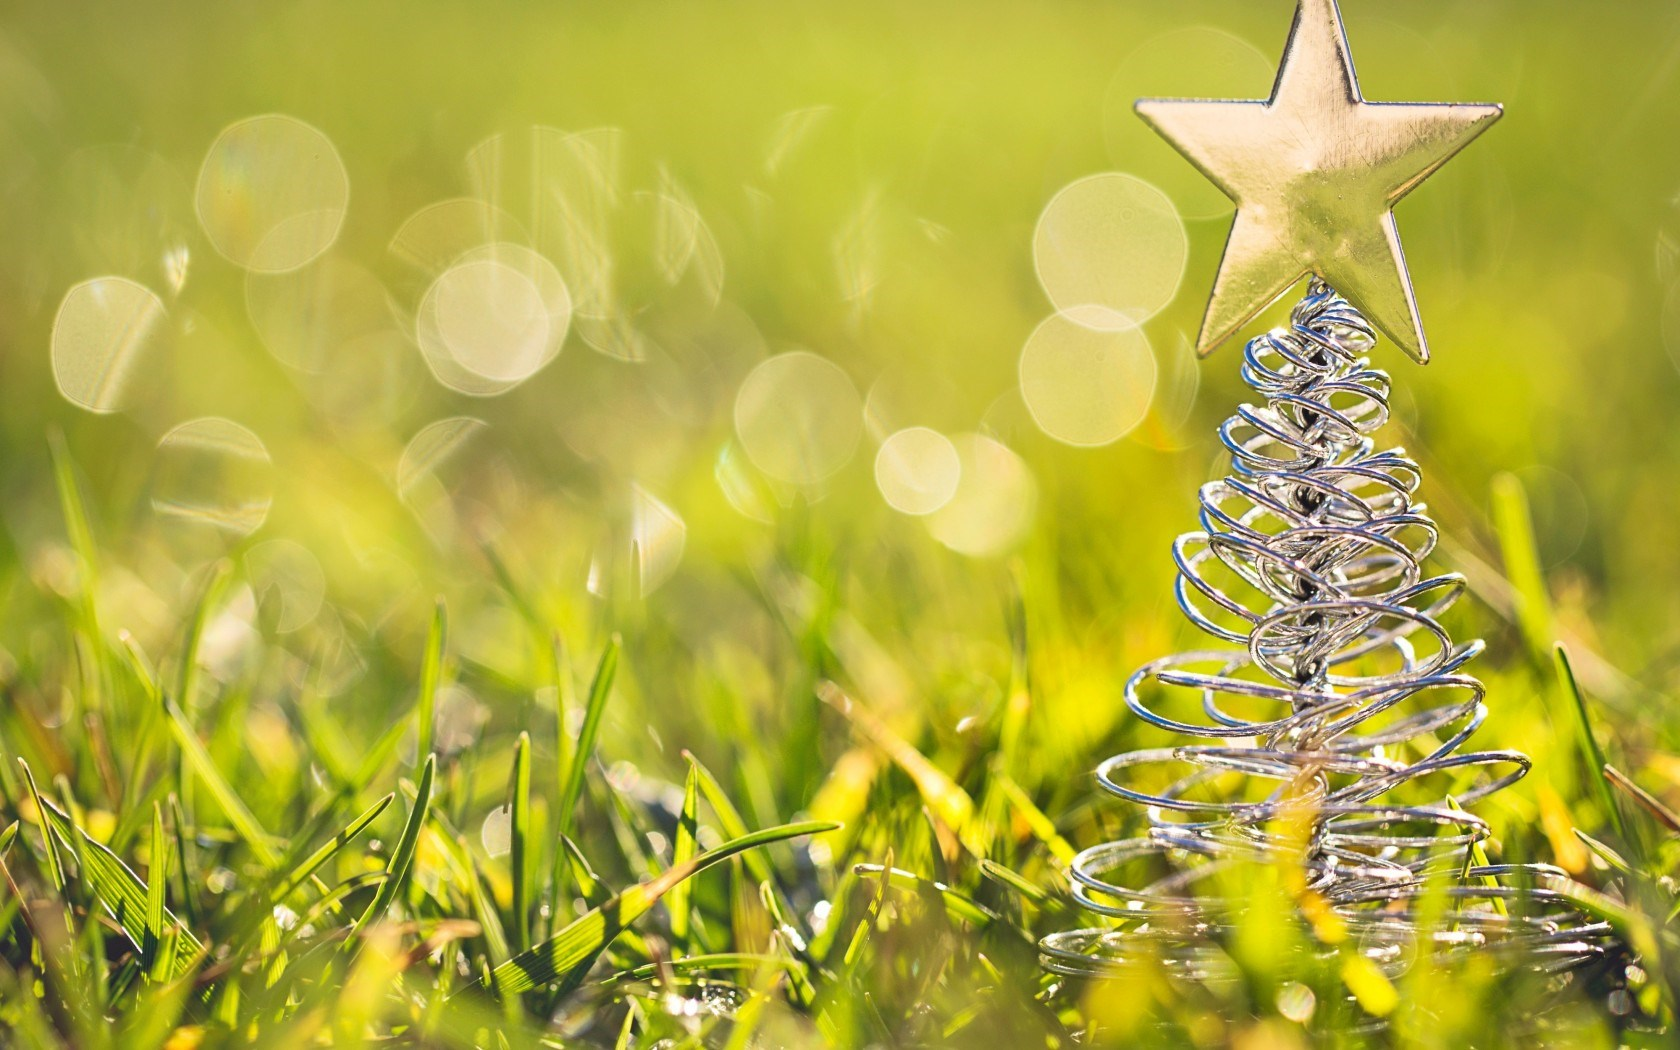 Christmas Tree Toy Star Grass